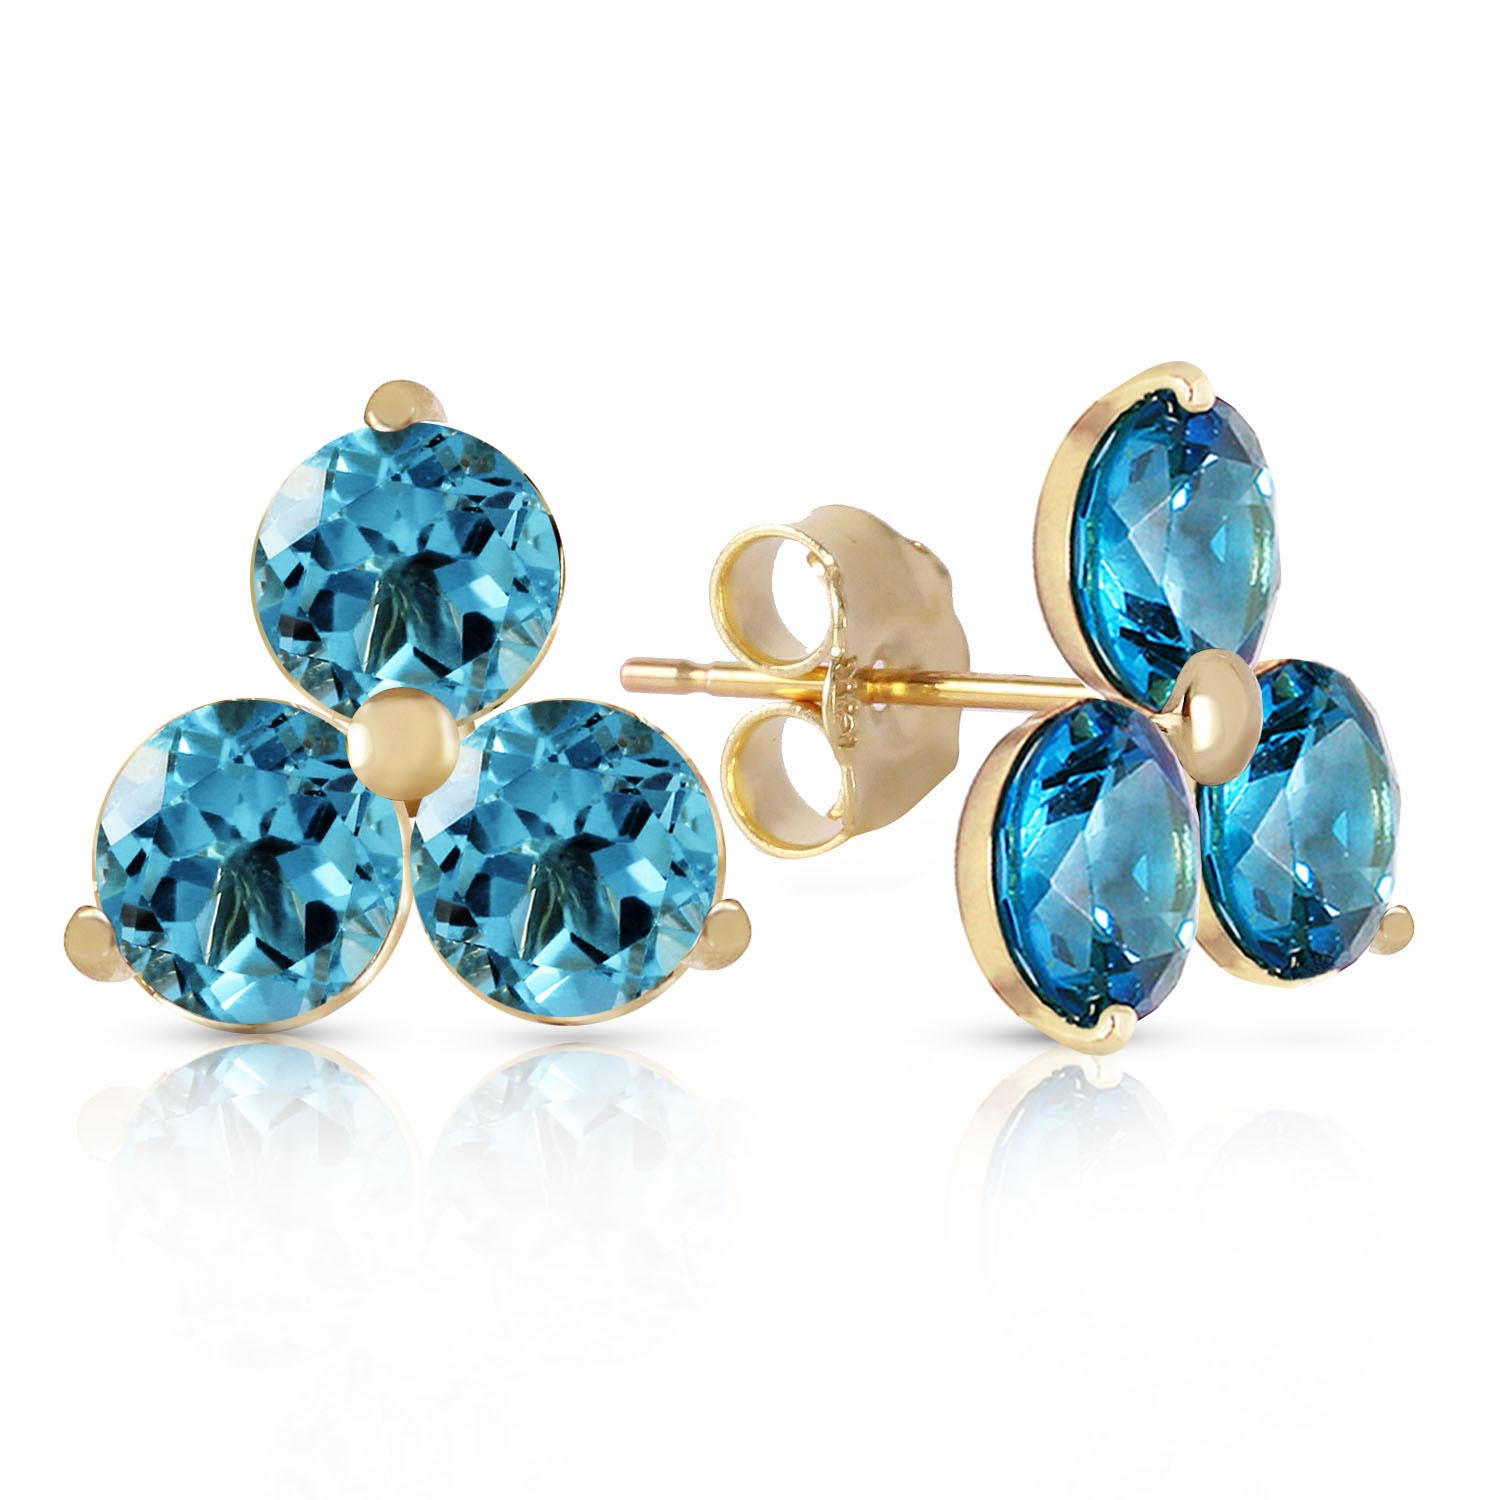 Blue Topaz Trinity Stud Earrings 1.5ctw in 9ct Gold